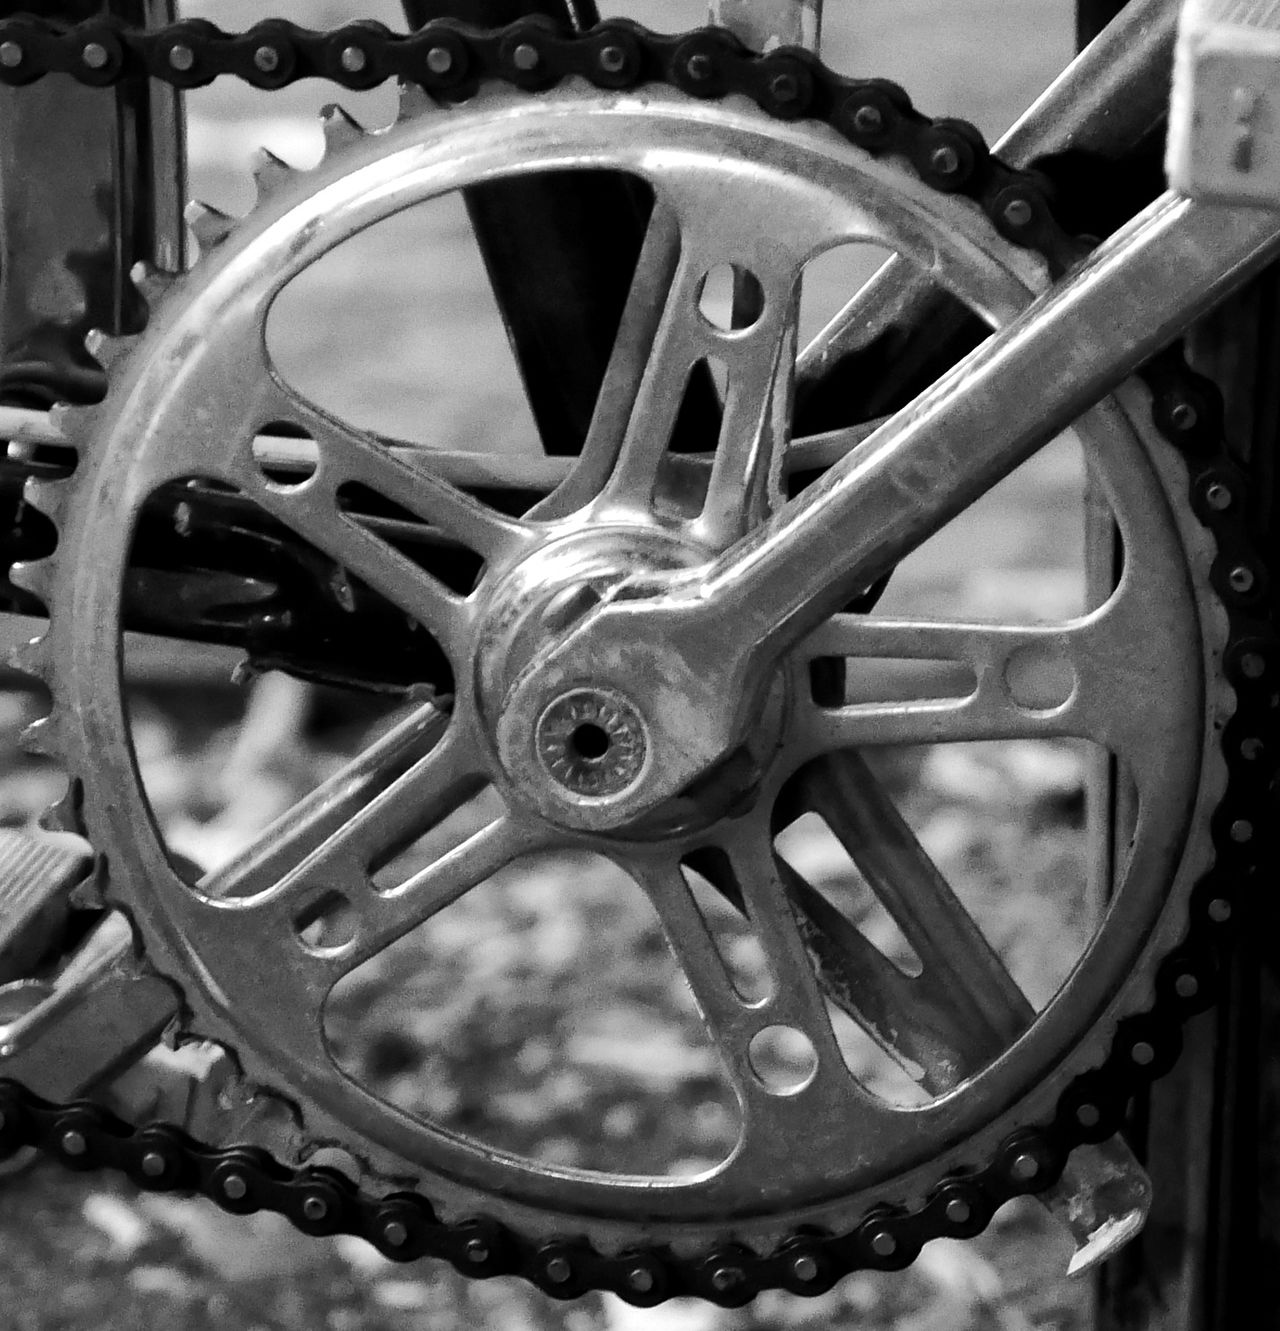 Gear Wheel Chain Bike Close Up Black And White Bike Chain